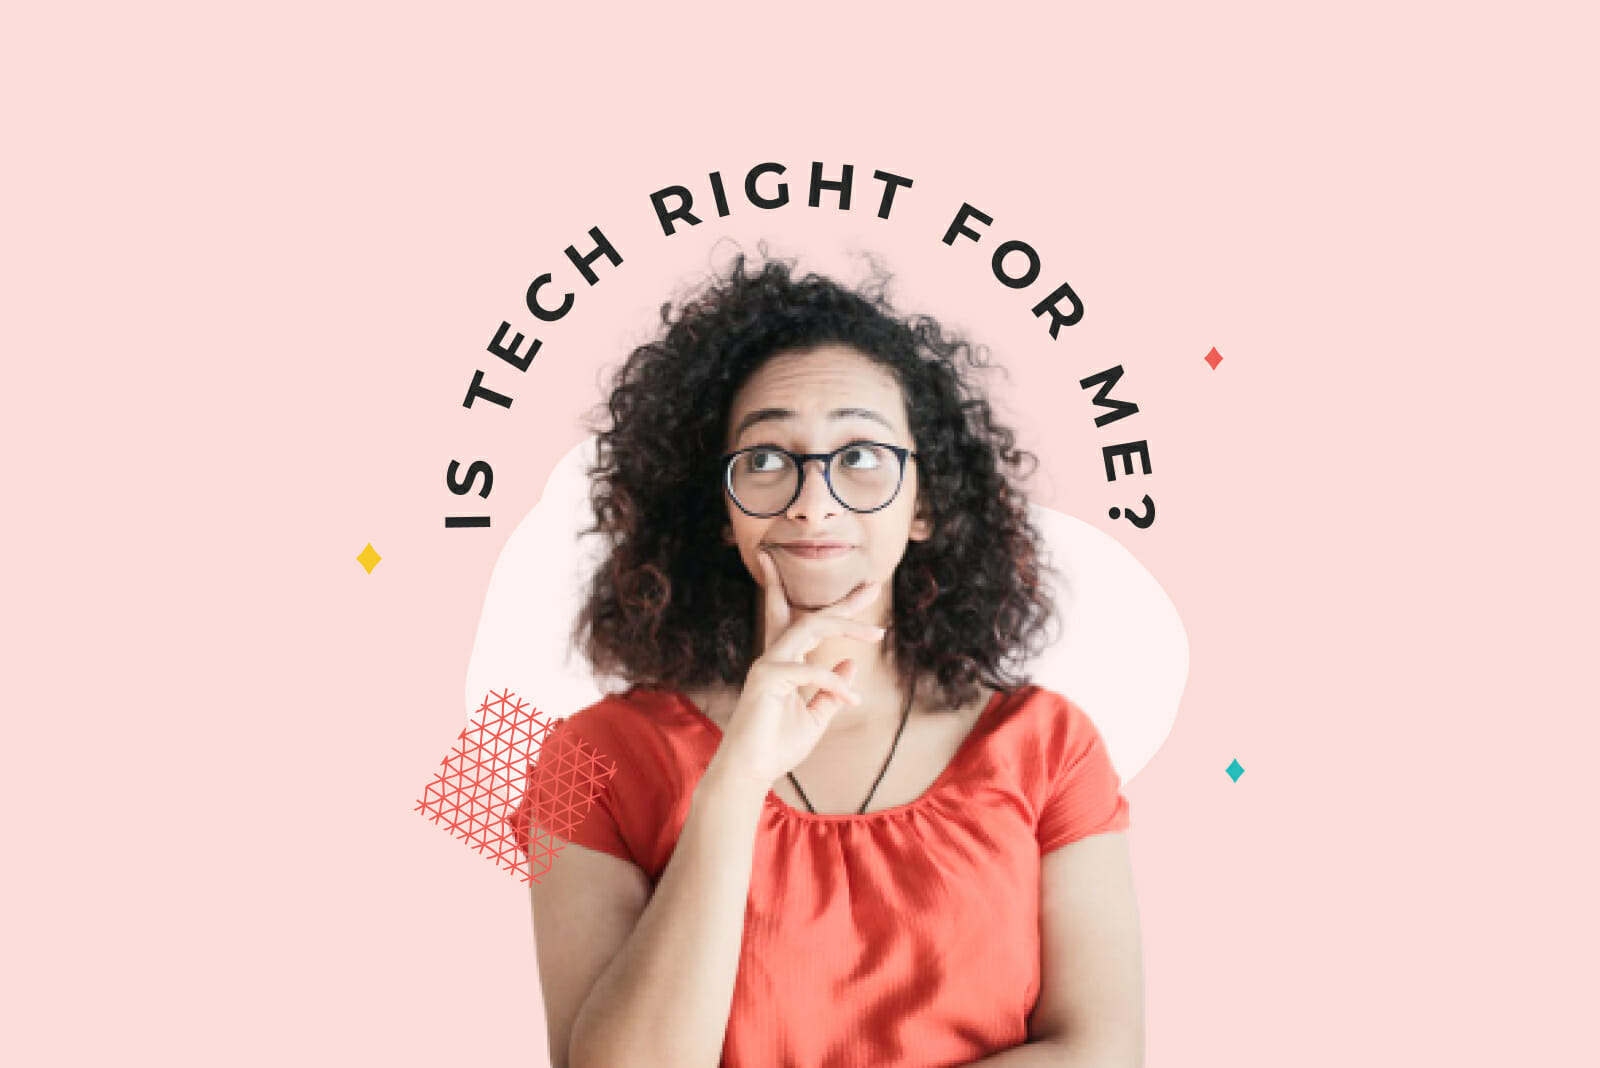 Girl in pink shirt with curly hair and glasses has hand ponders whether tech is right for her against a pink background